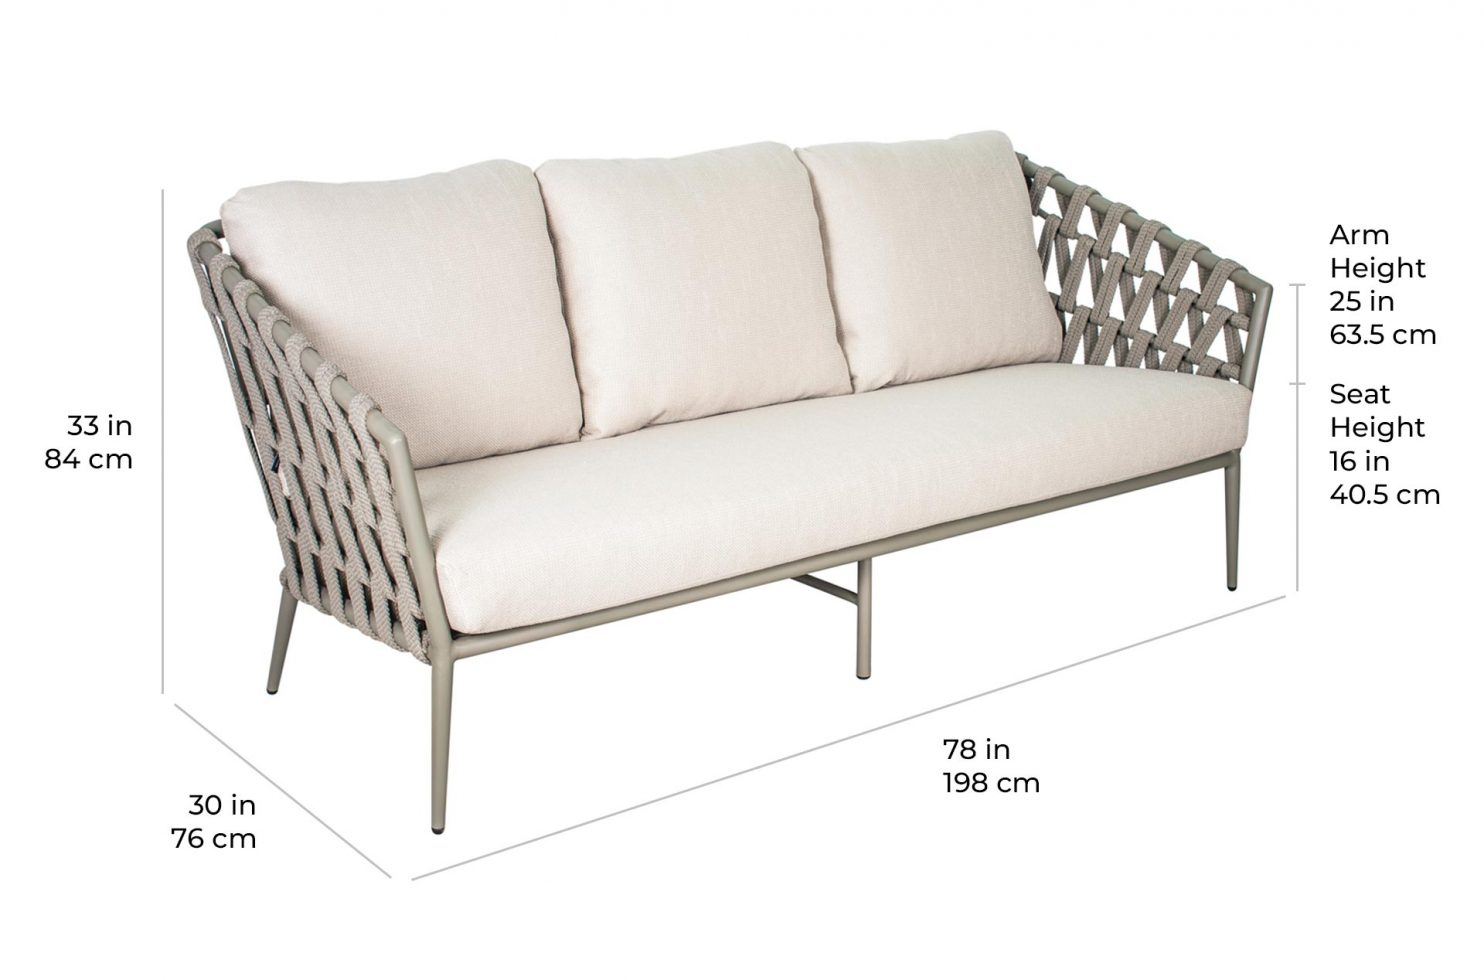 arch andaman sofa 620FT066P2 scale dims